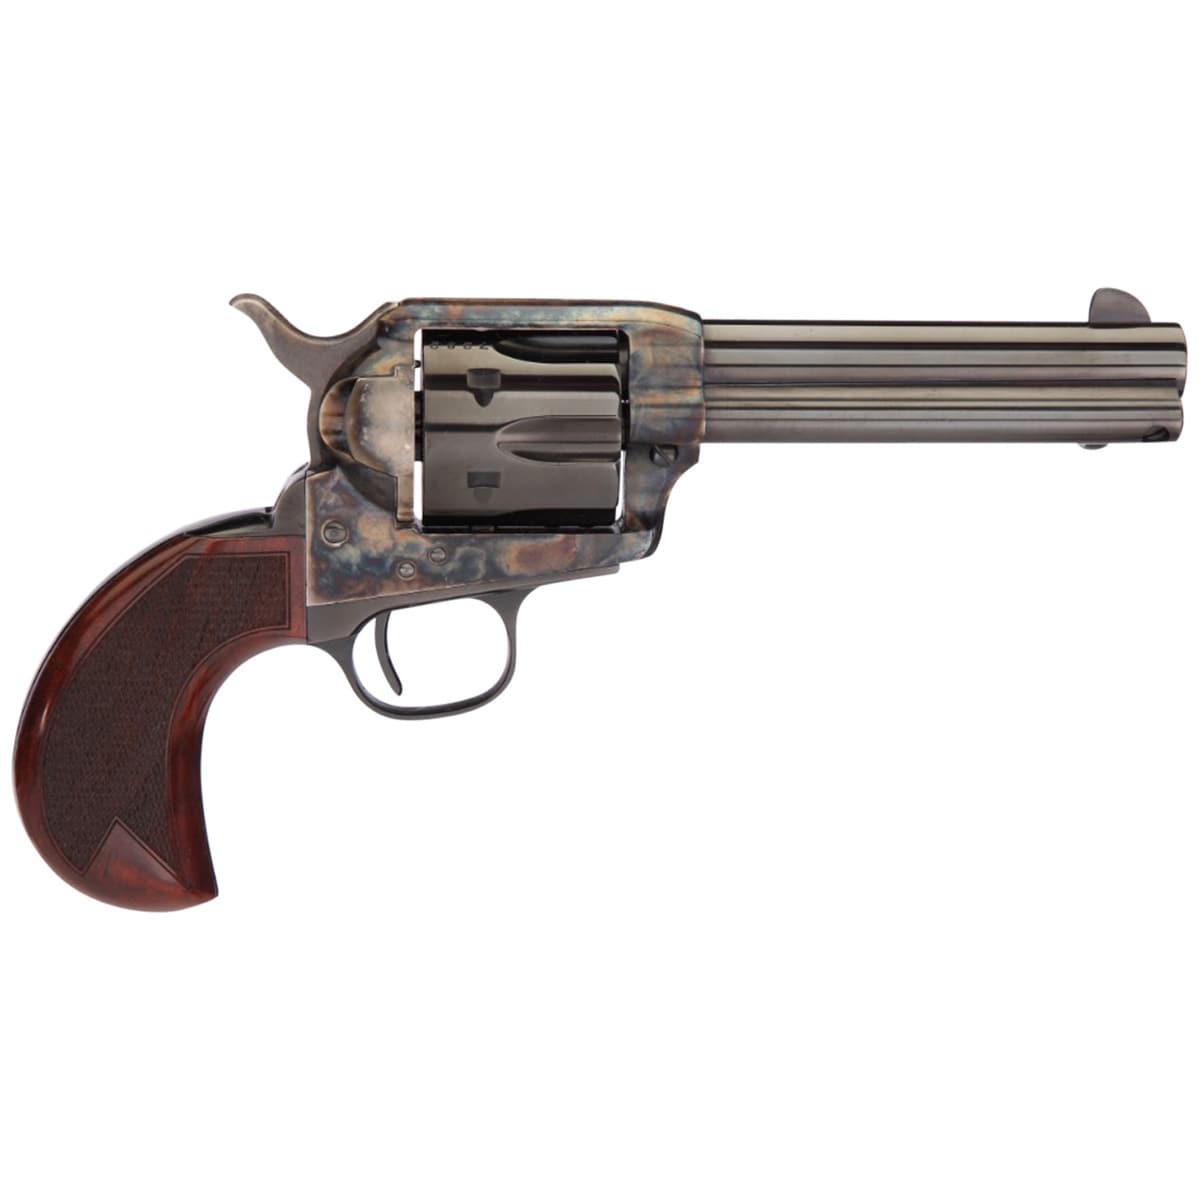 TAYLOR'S & CO. Taylors and Company 1873 Cattleman Birdshead 45 (Long) Colt 4.75in Blued Revolver - 6 Rounds